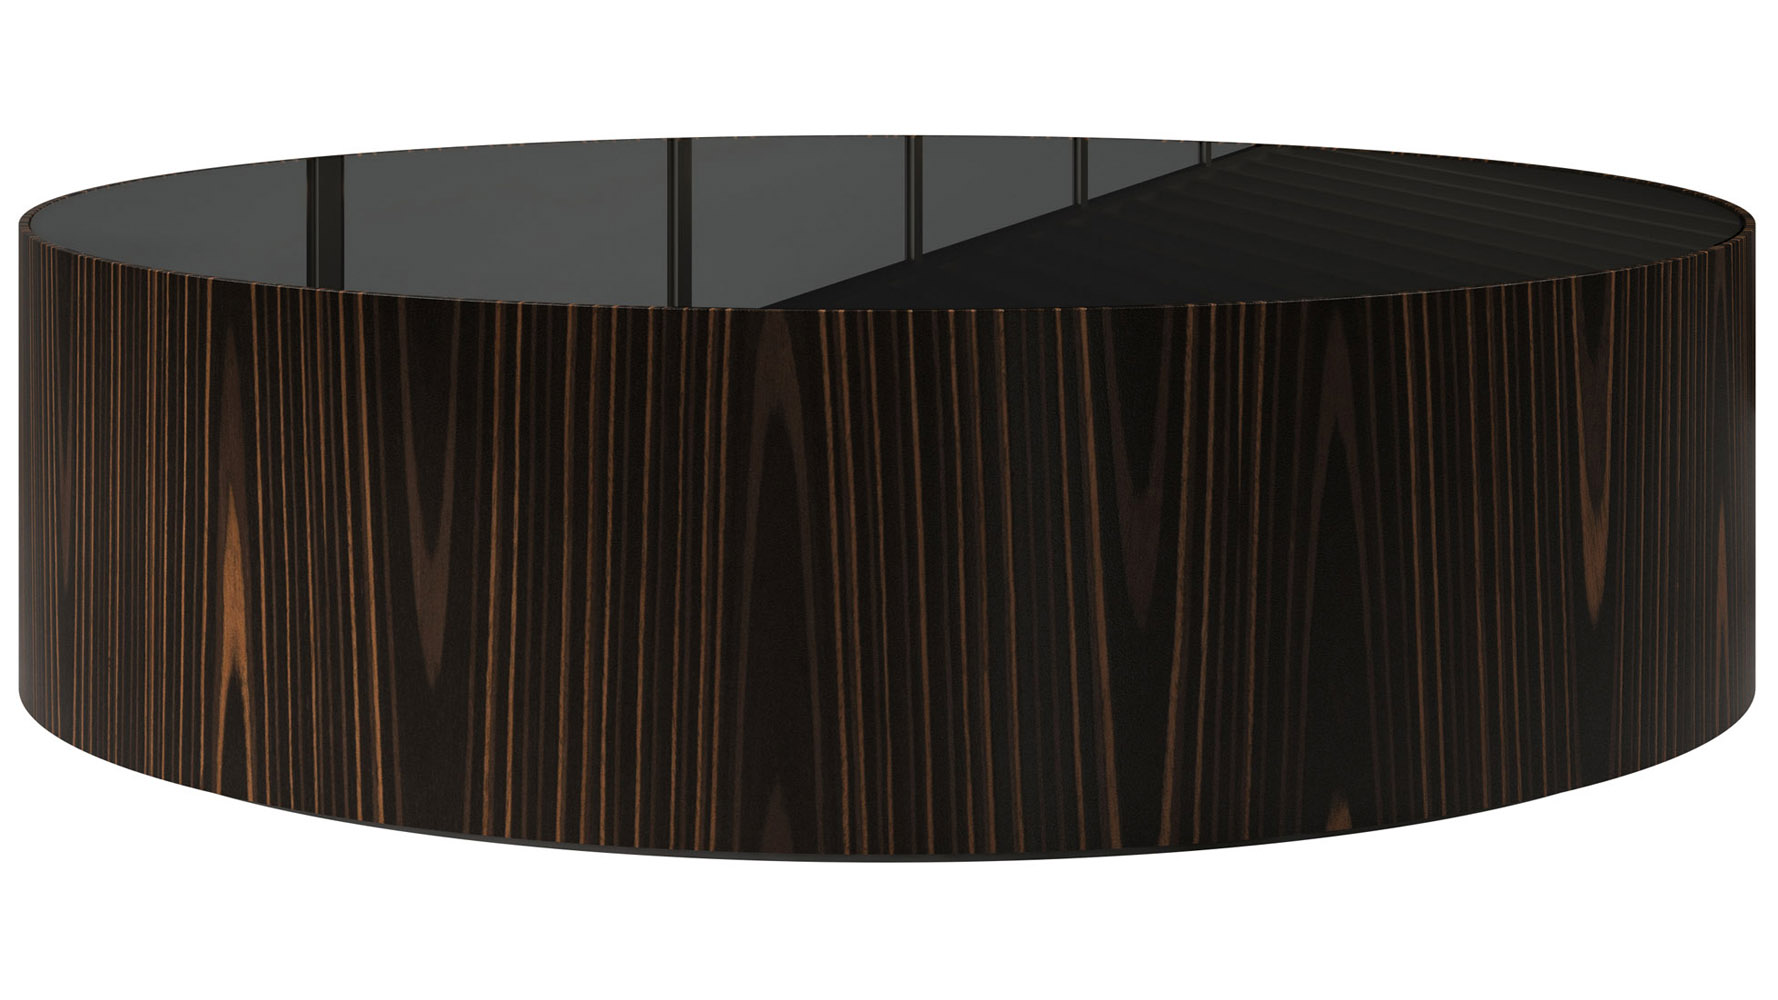 Modern Coffee Table Furniture For Your Living Room   On Sale Now! | Zuri  Furniture